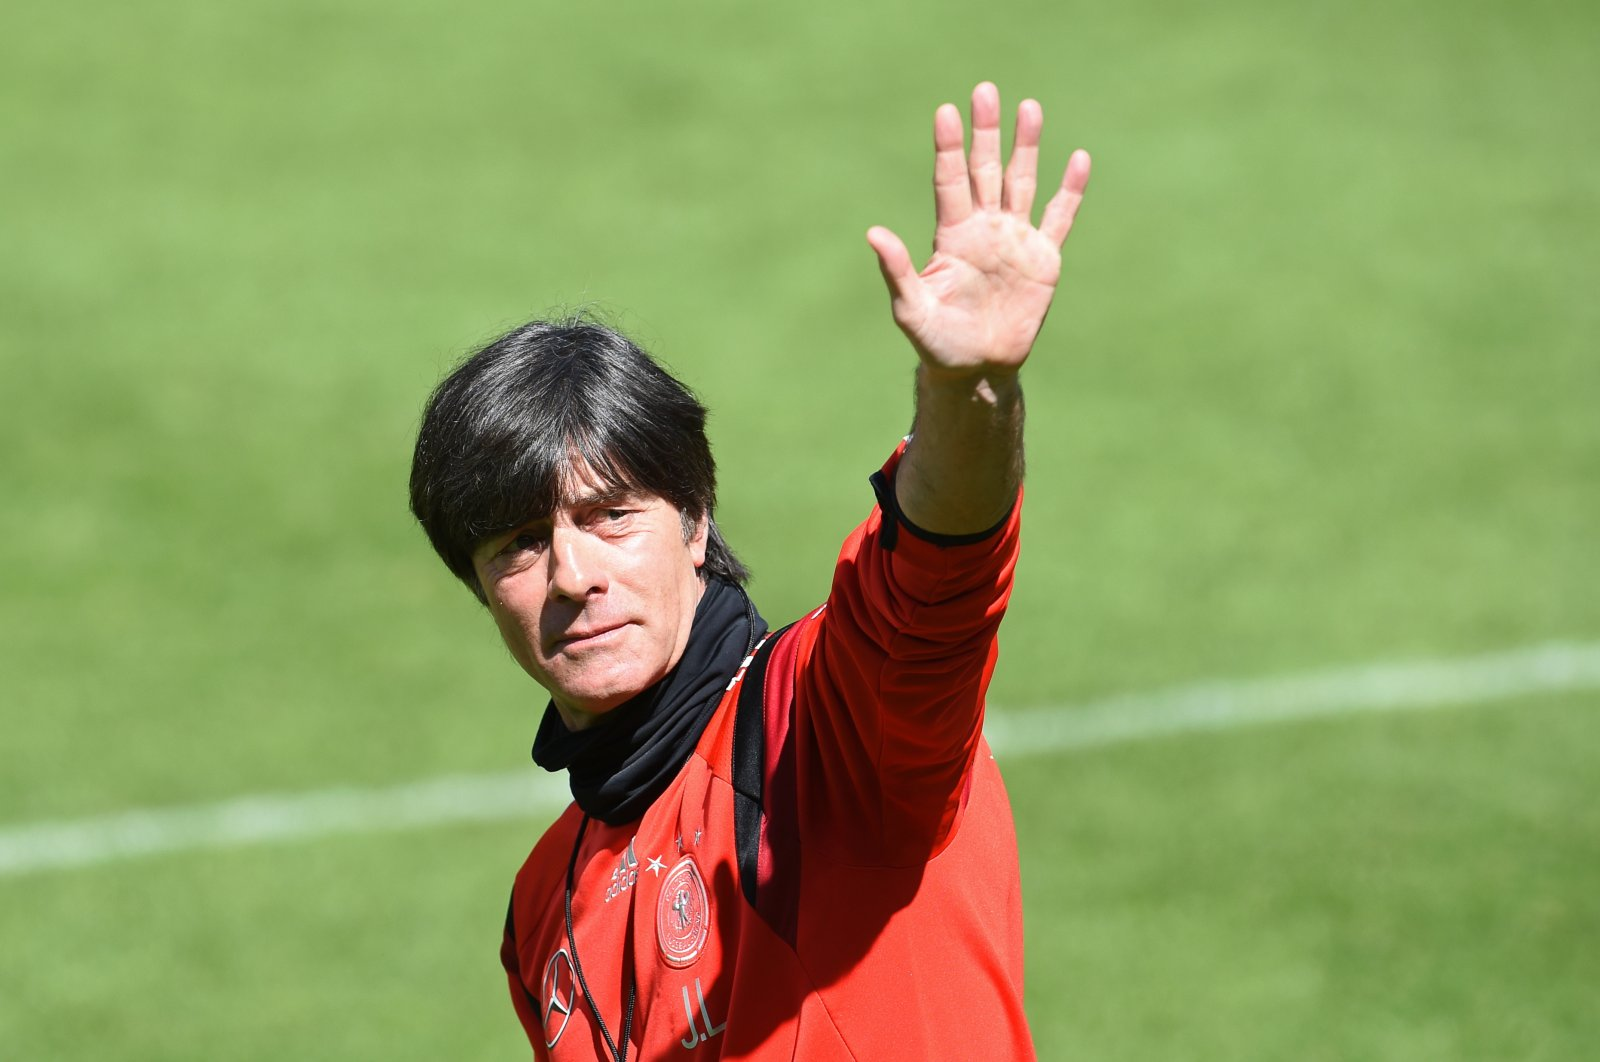 Germany's head coach Joachim Löw waves at fans during a training session at St. Leonhard in Passeier, Italy, May 30, 2014. (EPA Photo)